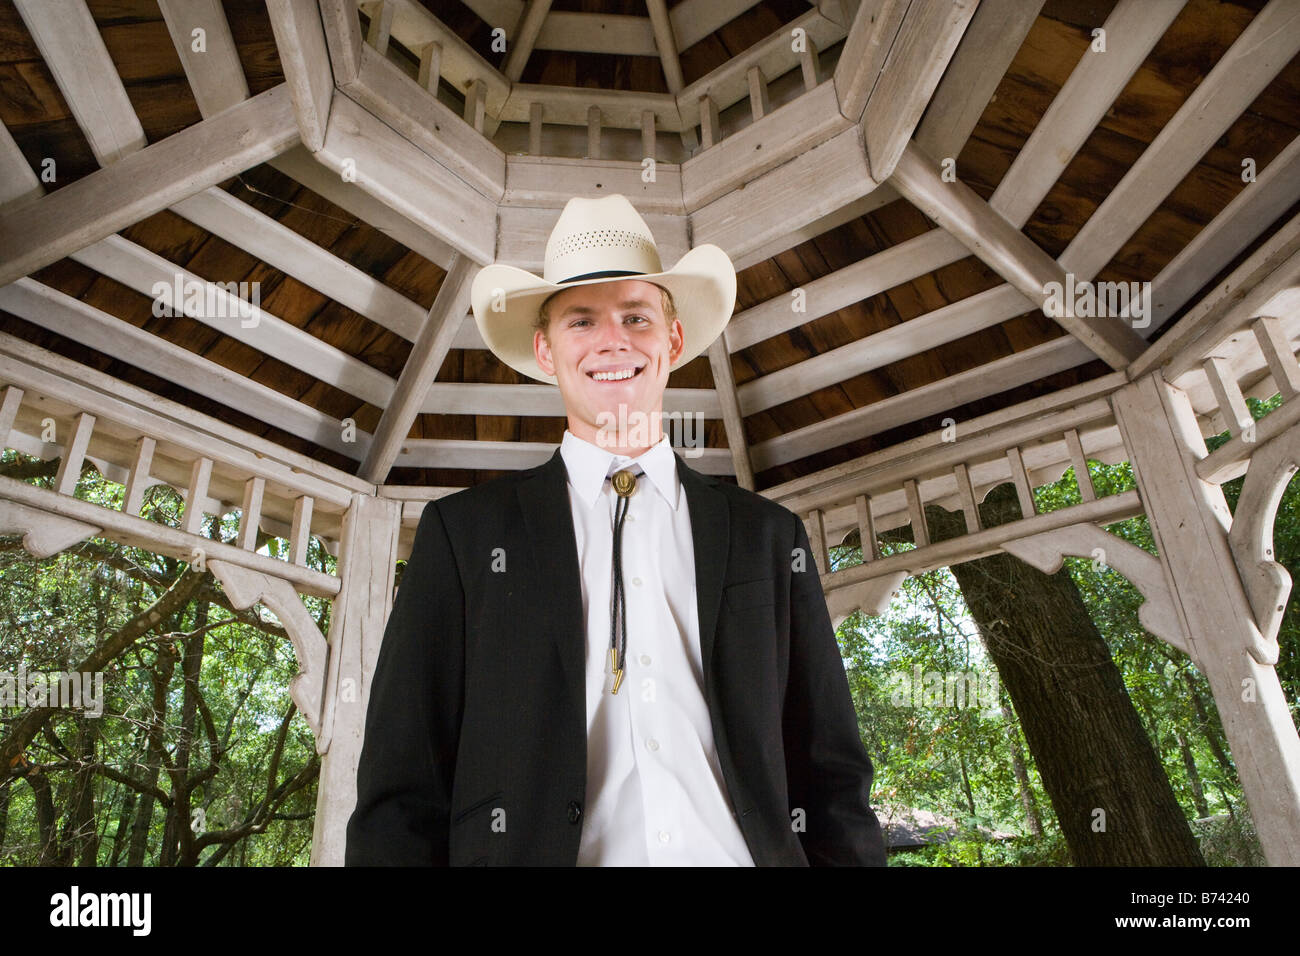 Portrait of young man in cowboy hat and suit standing in gazebo - Stock Image